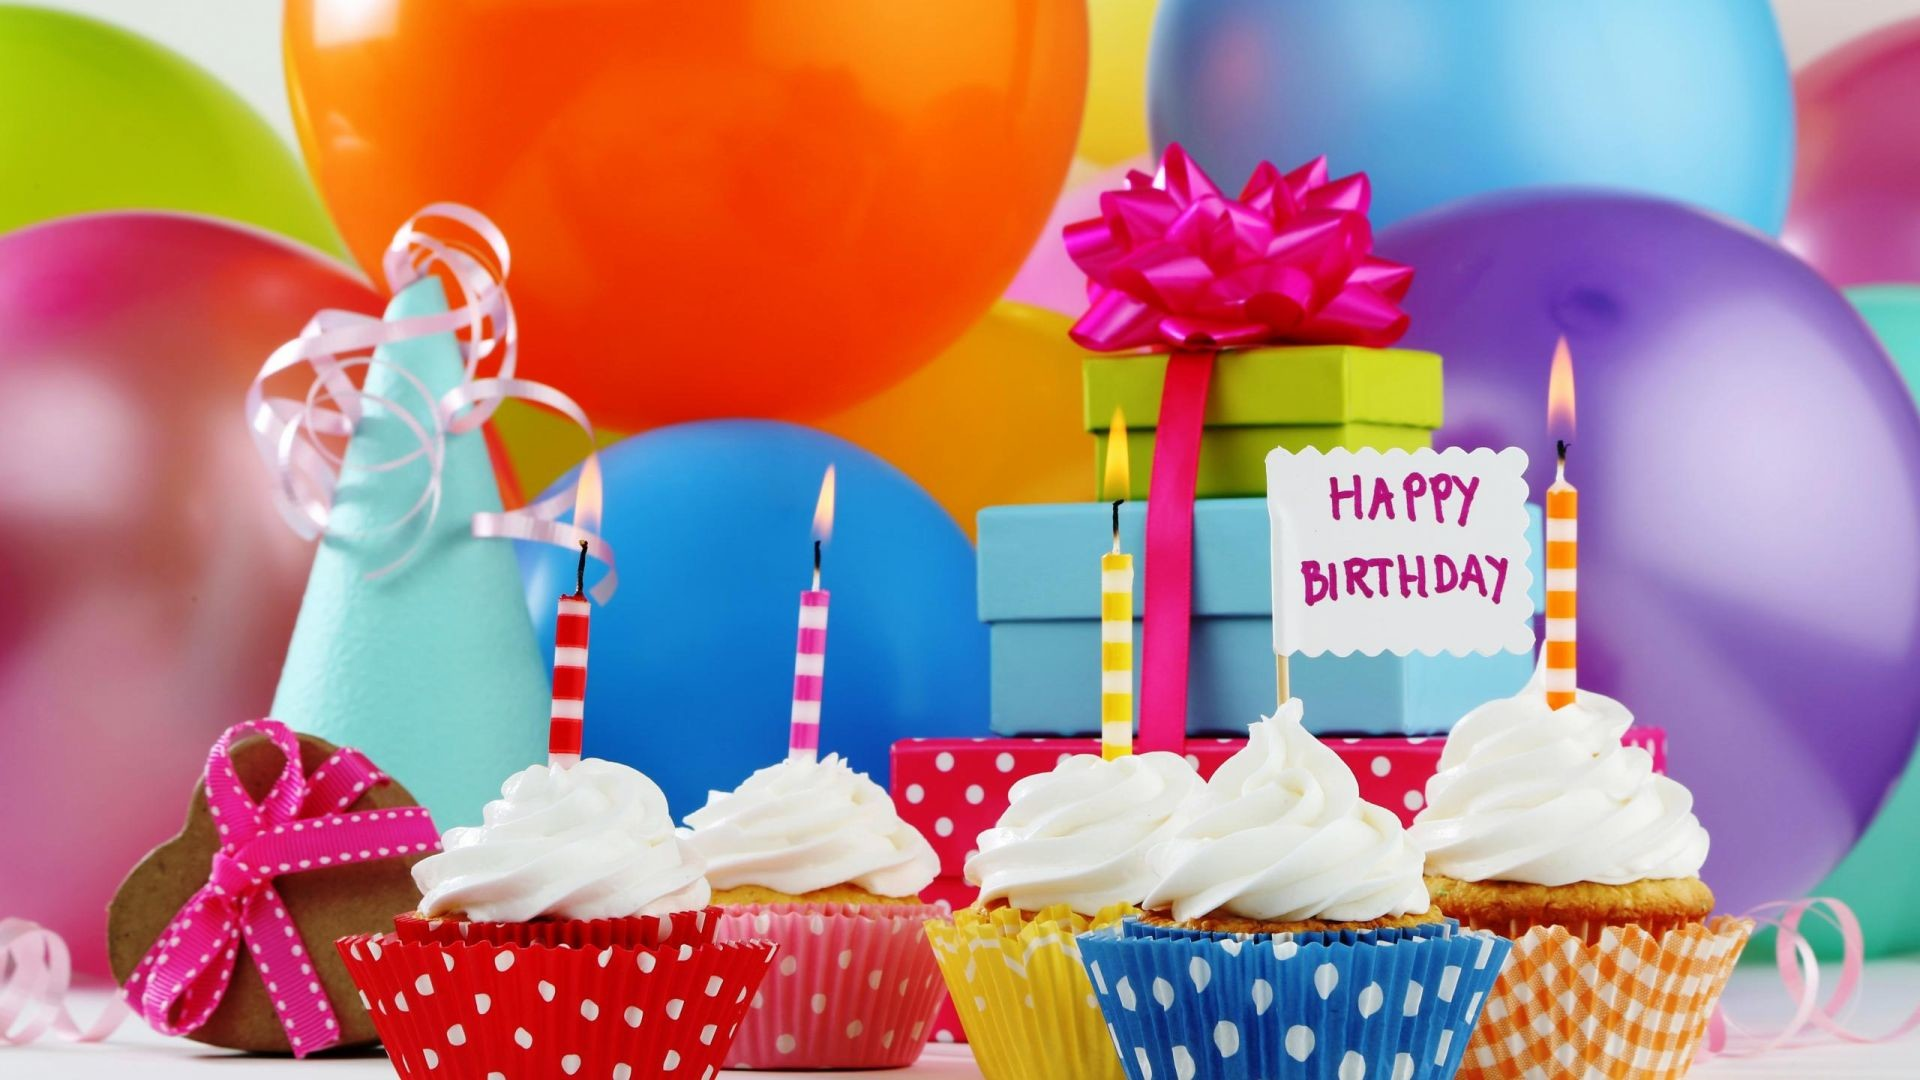 1920x1080 Happy Birthday Backgrounds HD Wallpapers